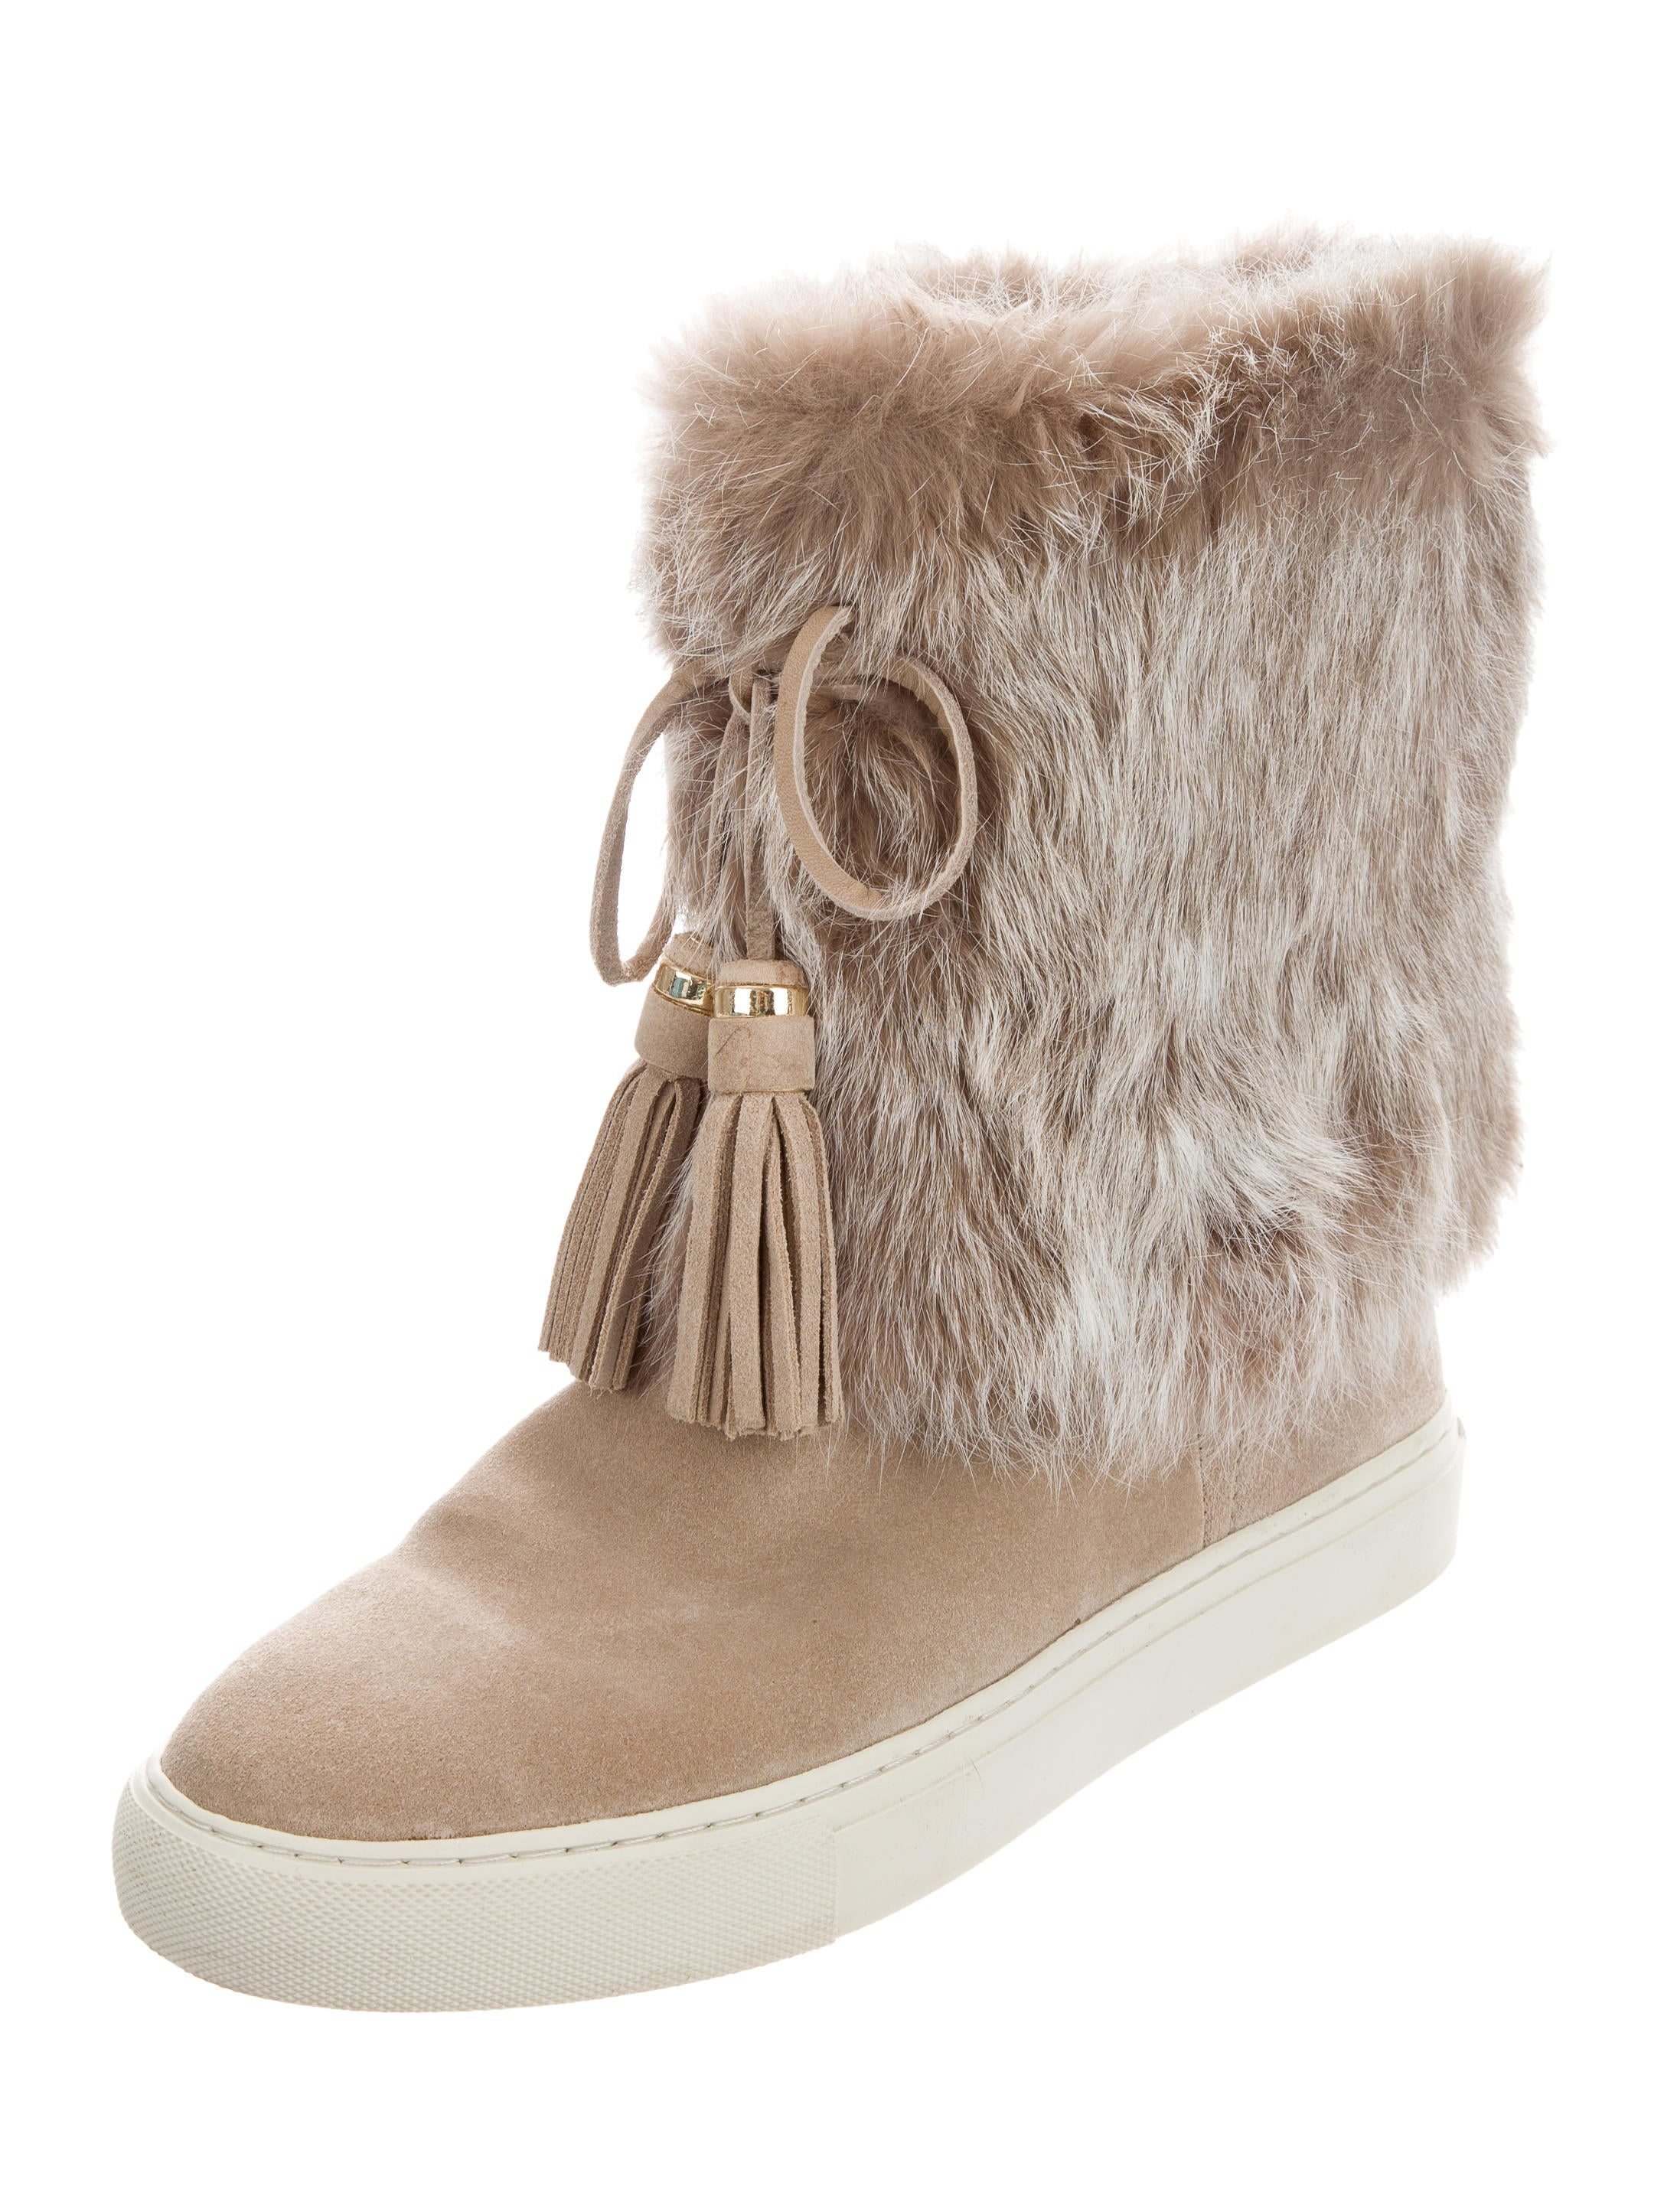 807970913aad Tory Burch Anjelica Fur-Trimmed Boots - Shoes - WTO120760